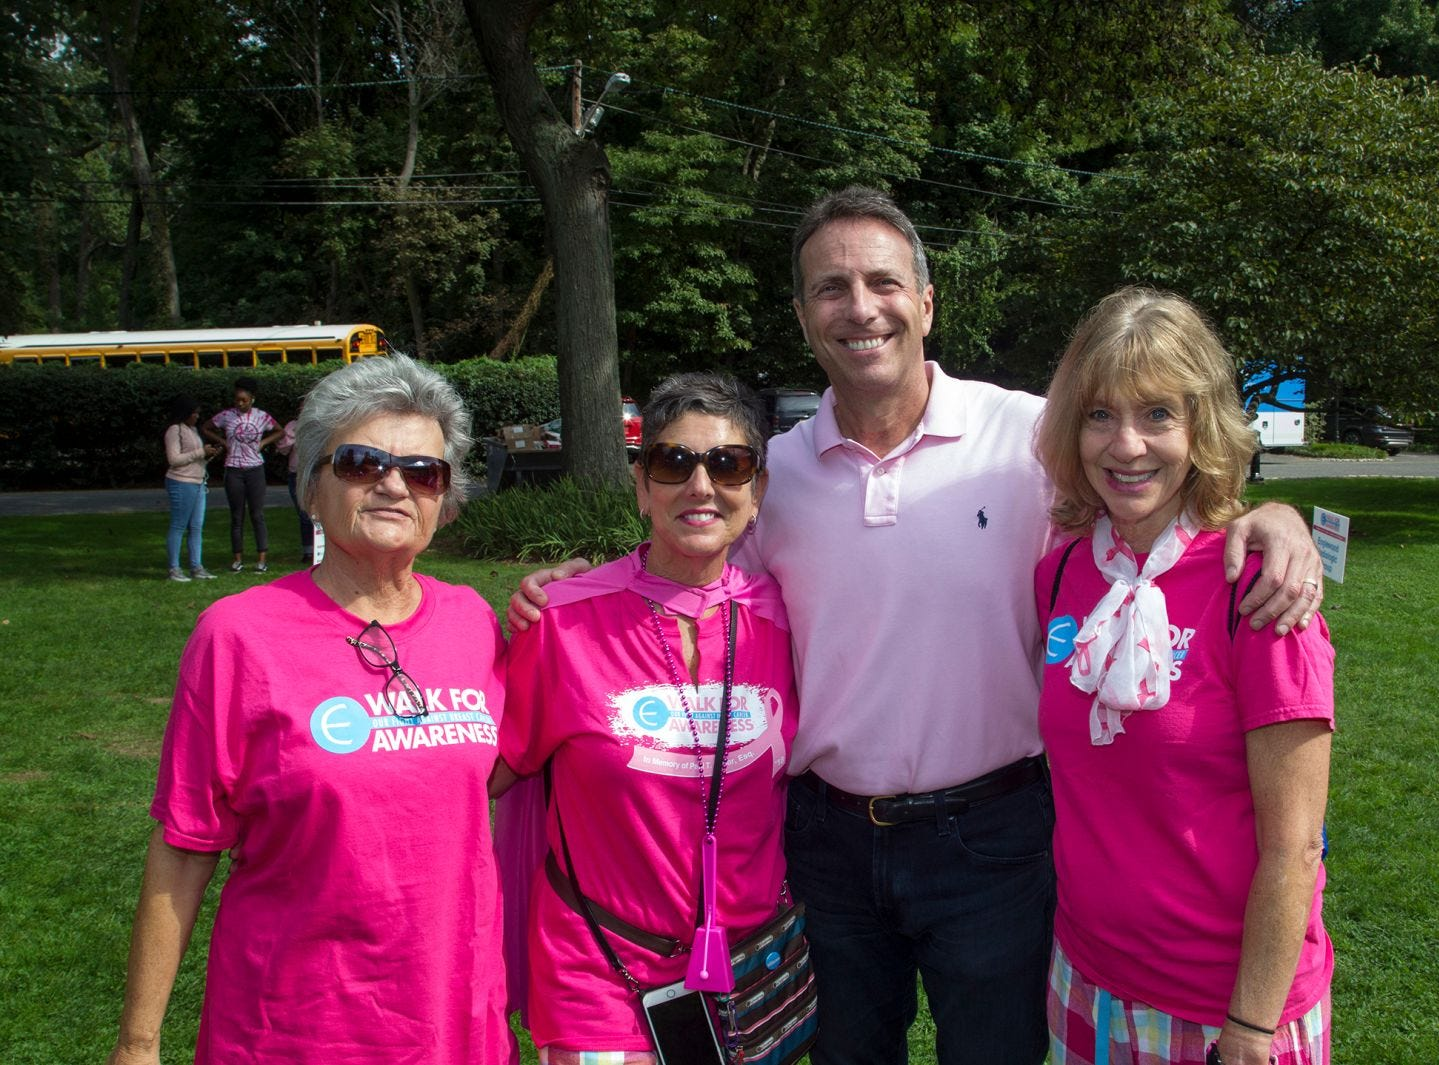 Florence Savage, Eileen Tucker, Jay Nadel, Joni Sweetwood. Englewood Health Foundation hosted its 2018 Walk for Awareness and Susan Lucianna Memorial Dog Walk dedicated in memory of Walk for Awareness co-founder Paul Fader, Esq. 10/07/2018